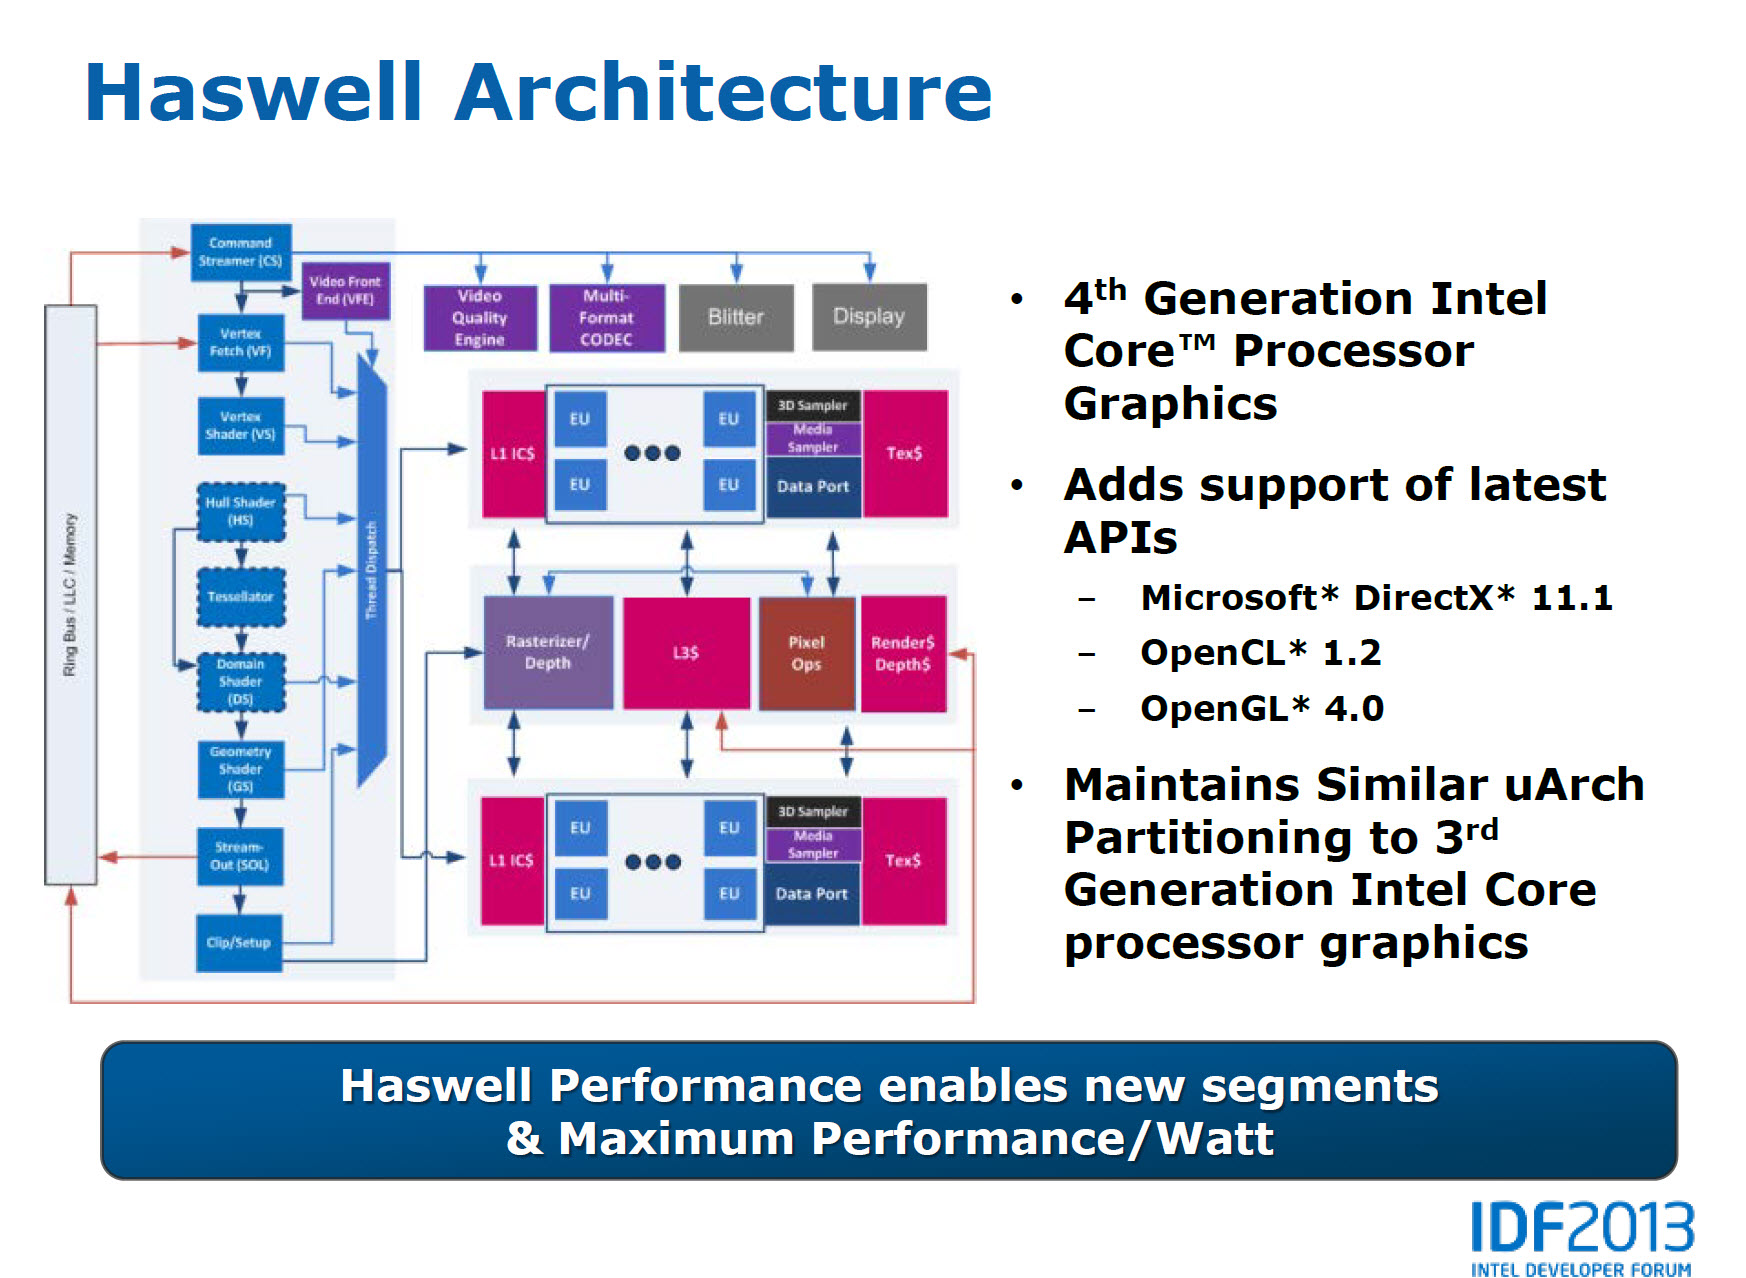 Idf 2013  Intel Details Haswell Microarchitecture  New